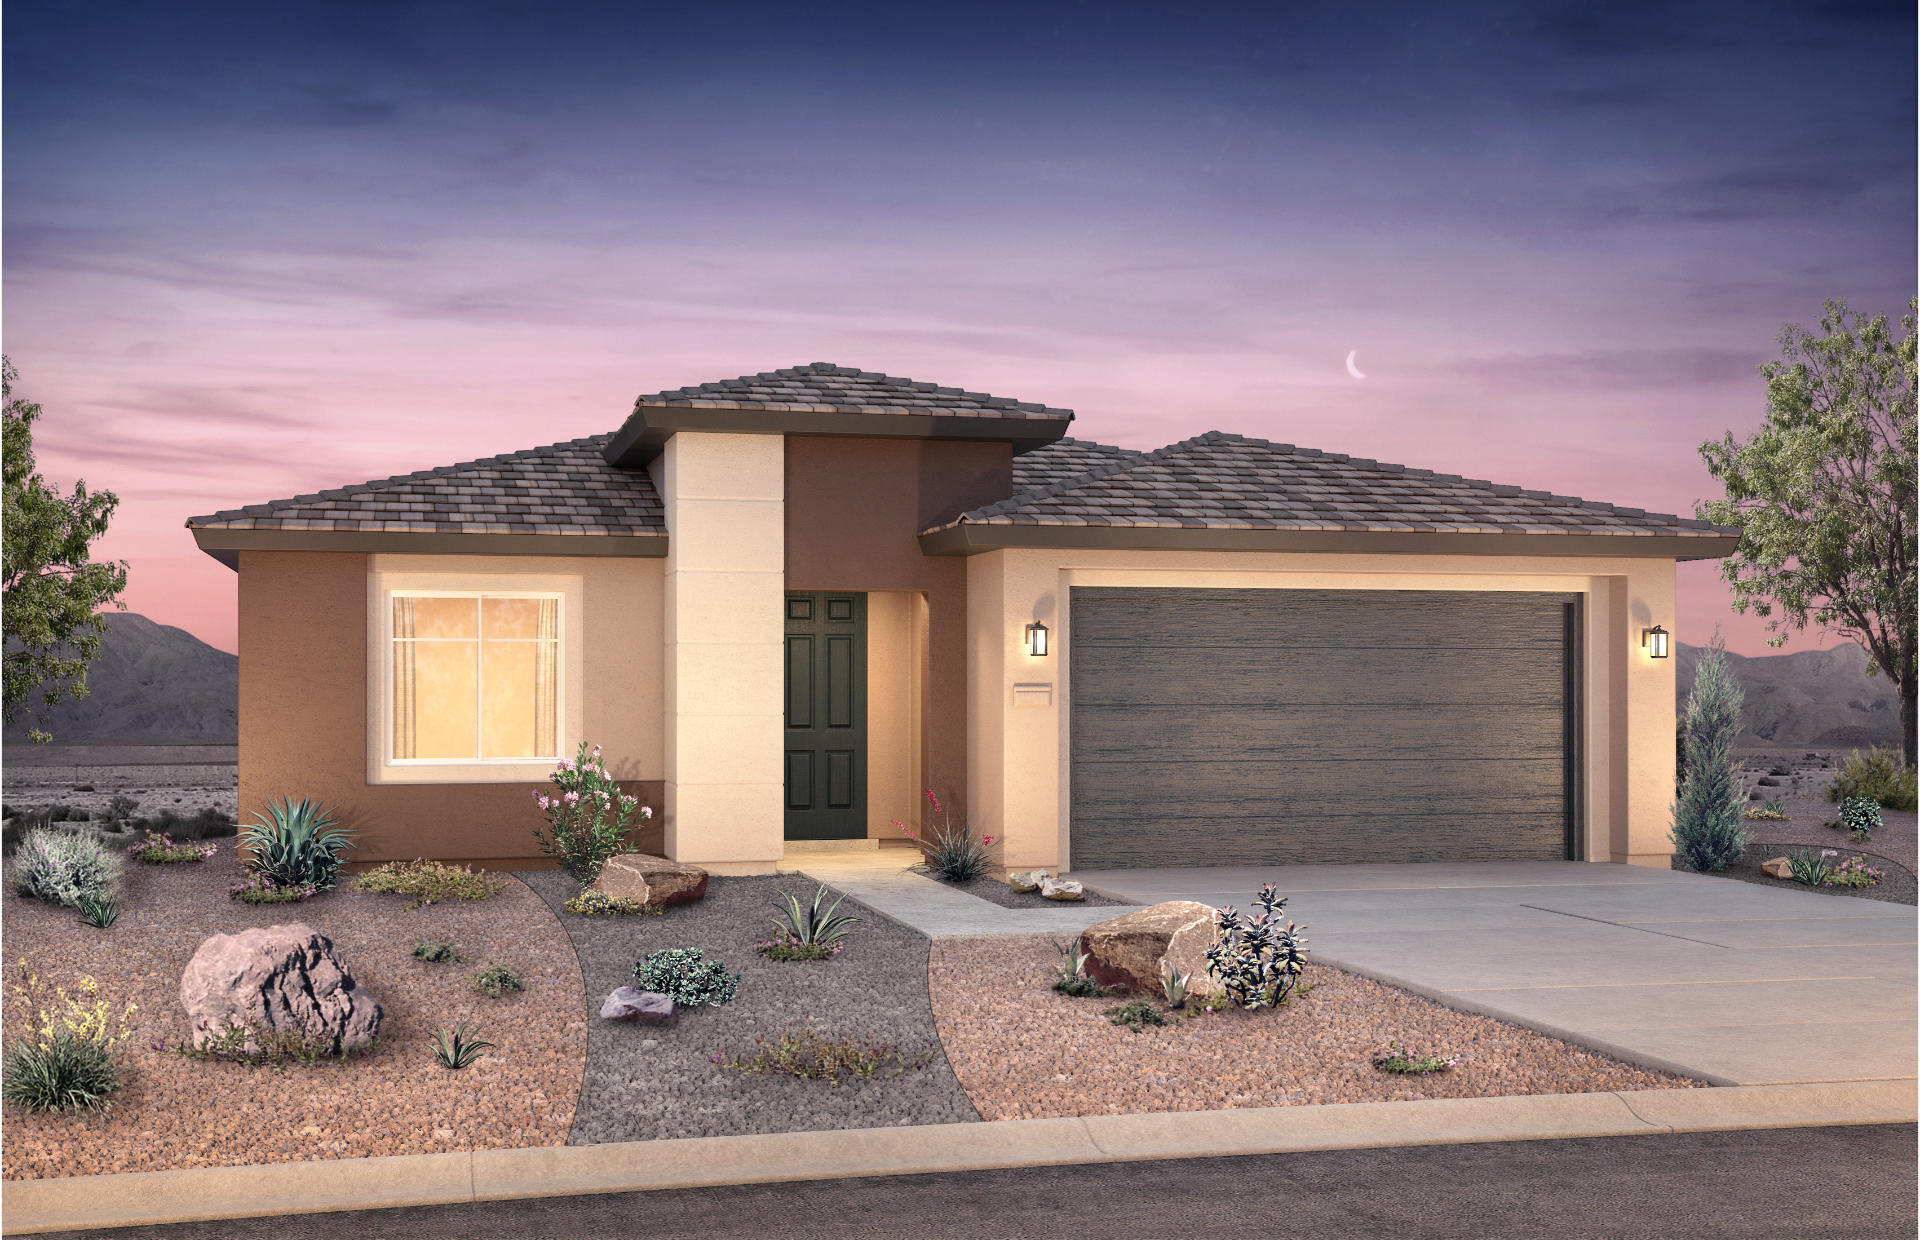 Very popular single-story Manzanita home in Broadmoor Heights Peak, Rio Rancho's newest community! This home has a gourmet chef kitchen, 8' upgraded interior doors, a huge sliding glass door to the covered patio outside, gorgeous flooring and more!